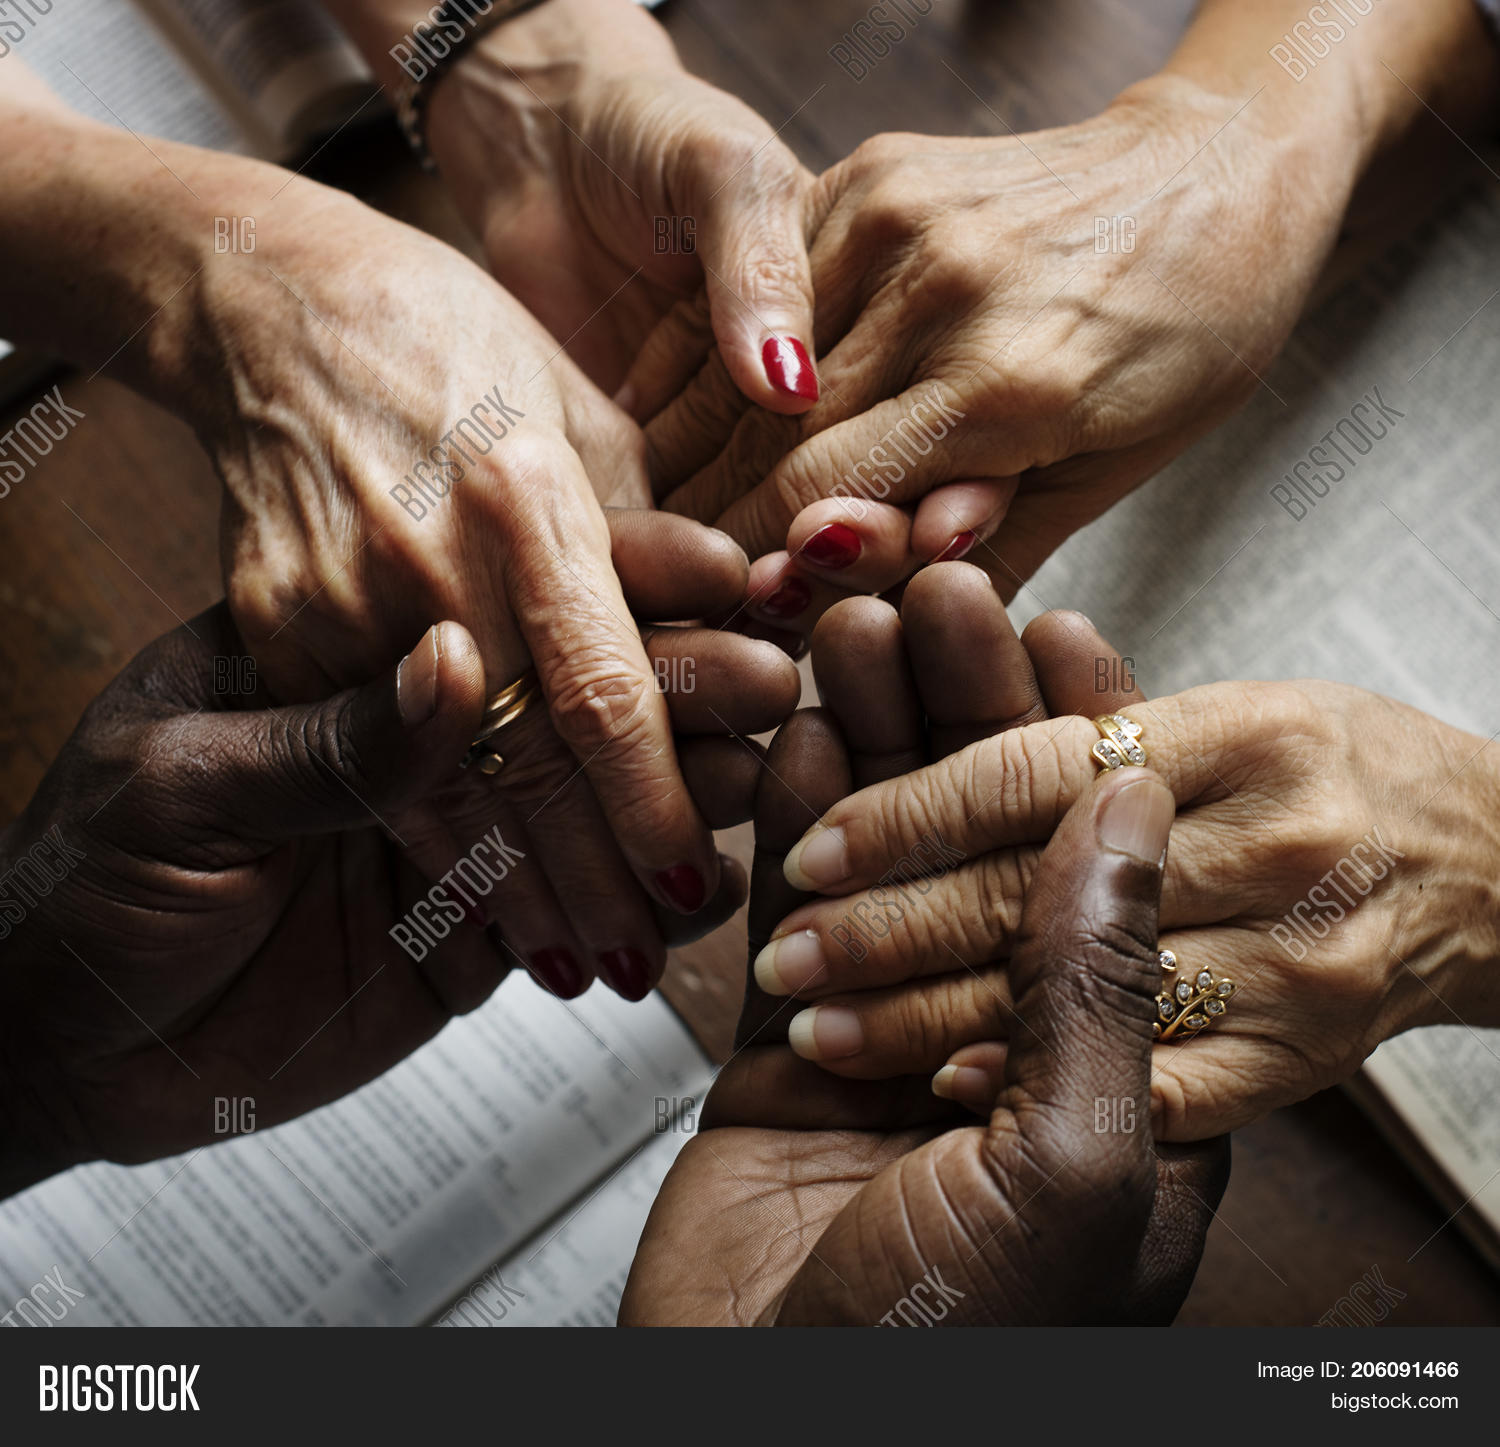 Group People Holding Hands Praying Image & Photo | Bigstock